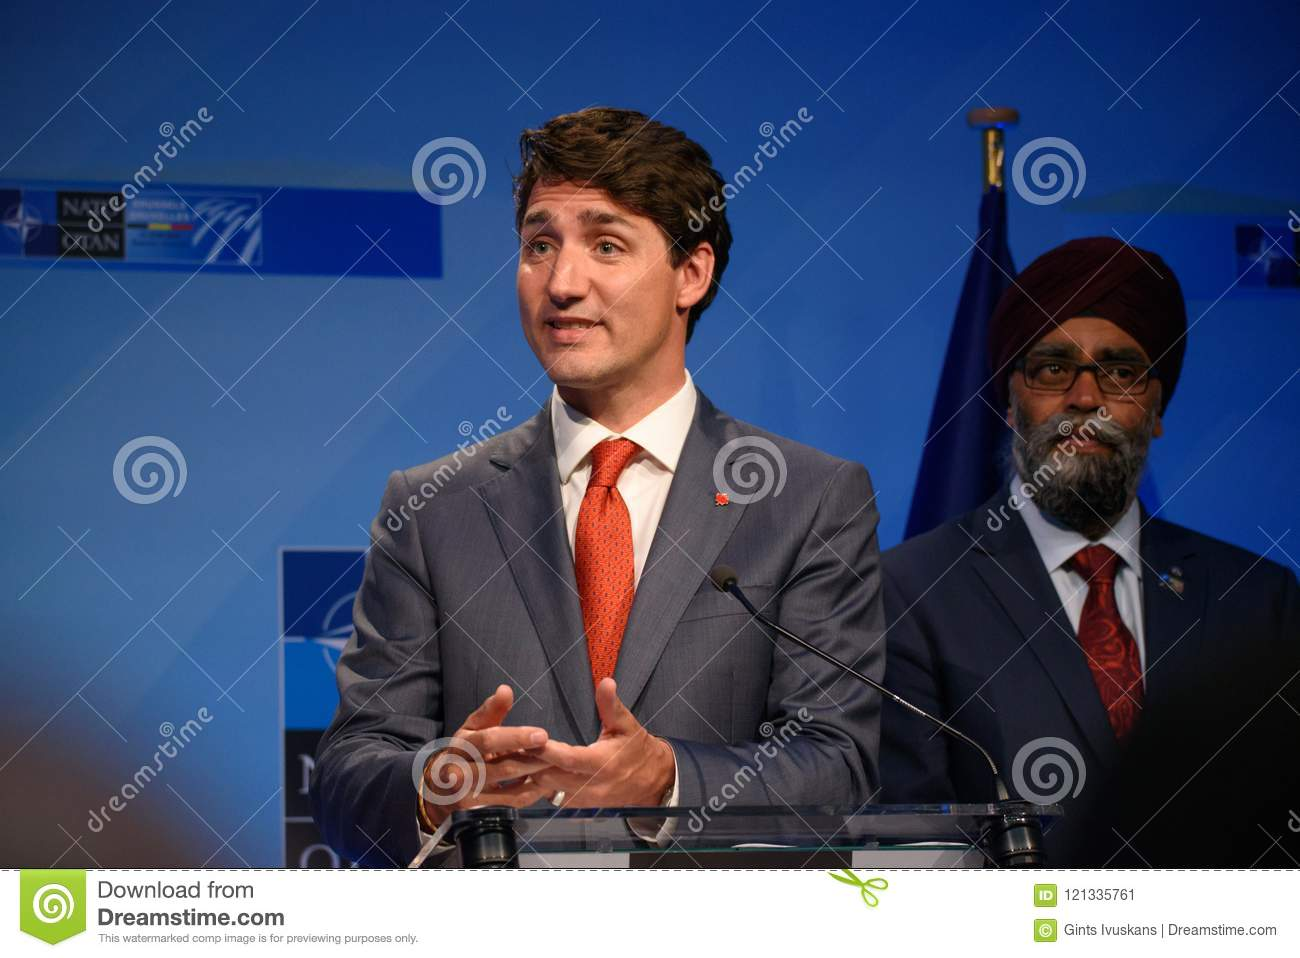 Justin Trudeau, Prime Minister of Canada and Harjit Singh Sajjan, Minister of Defence of Canada